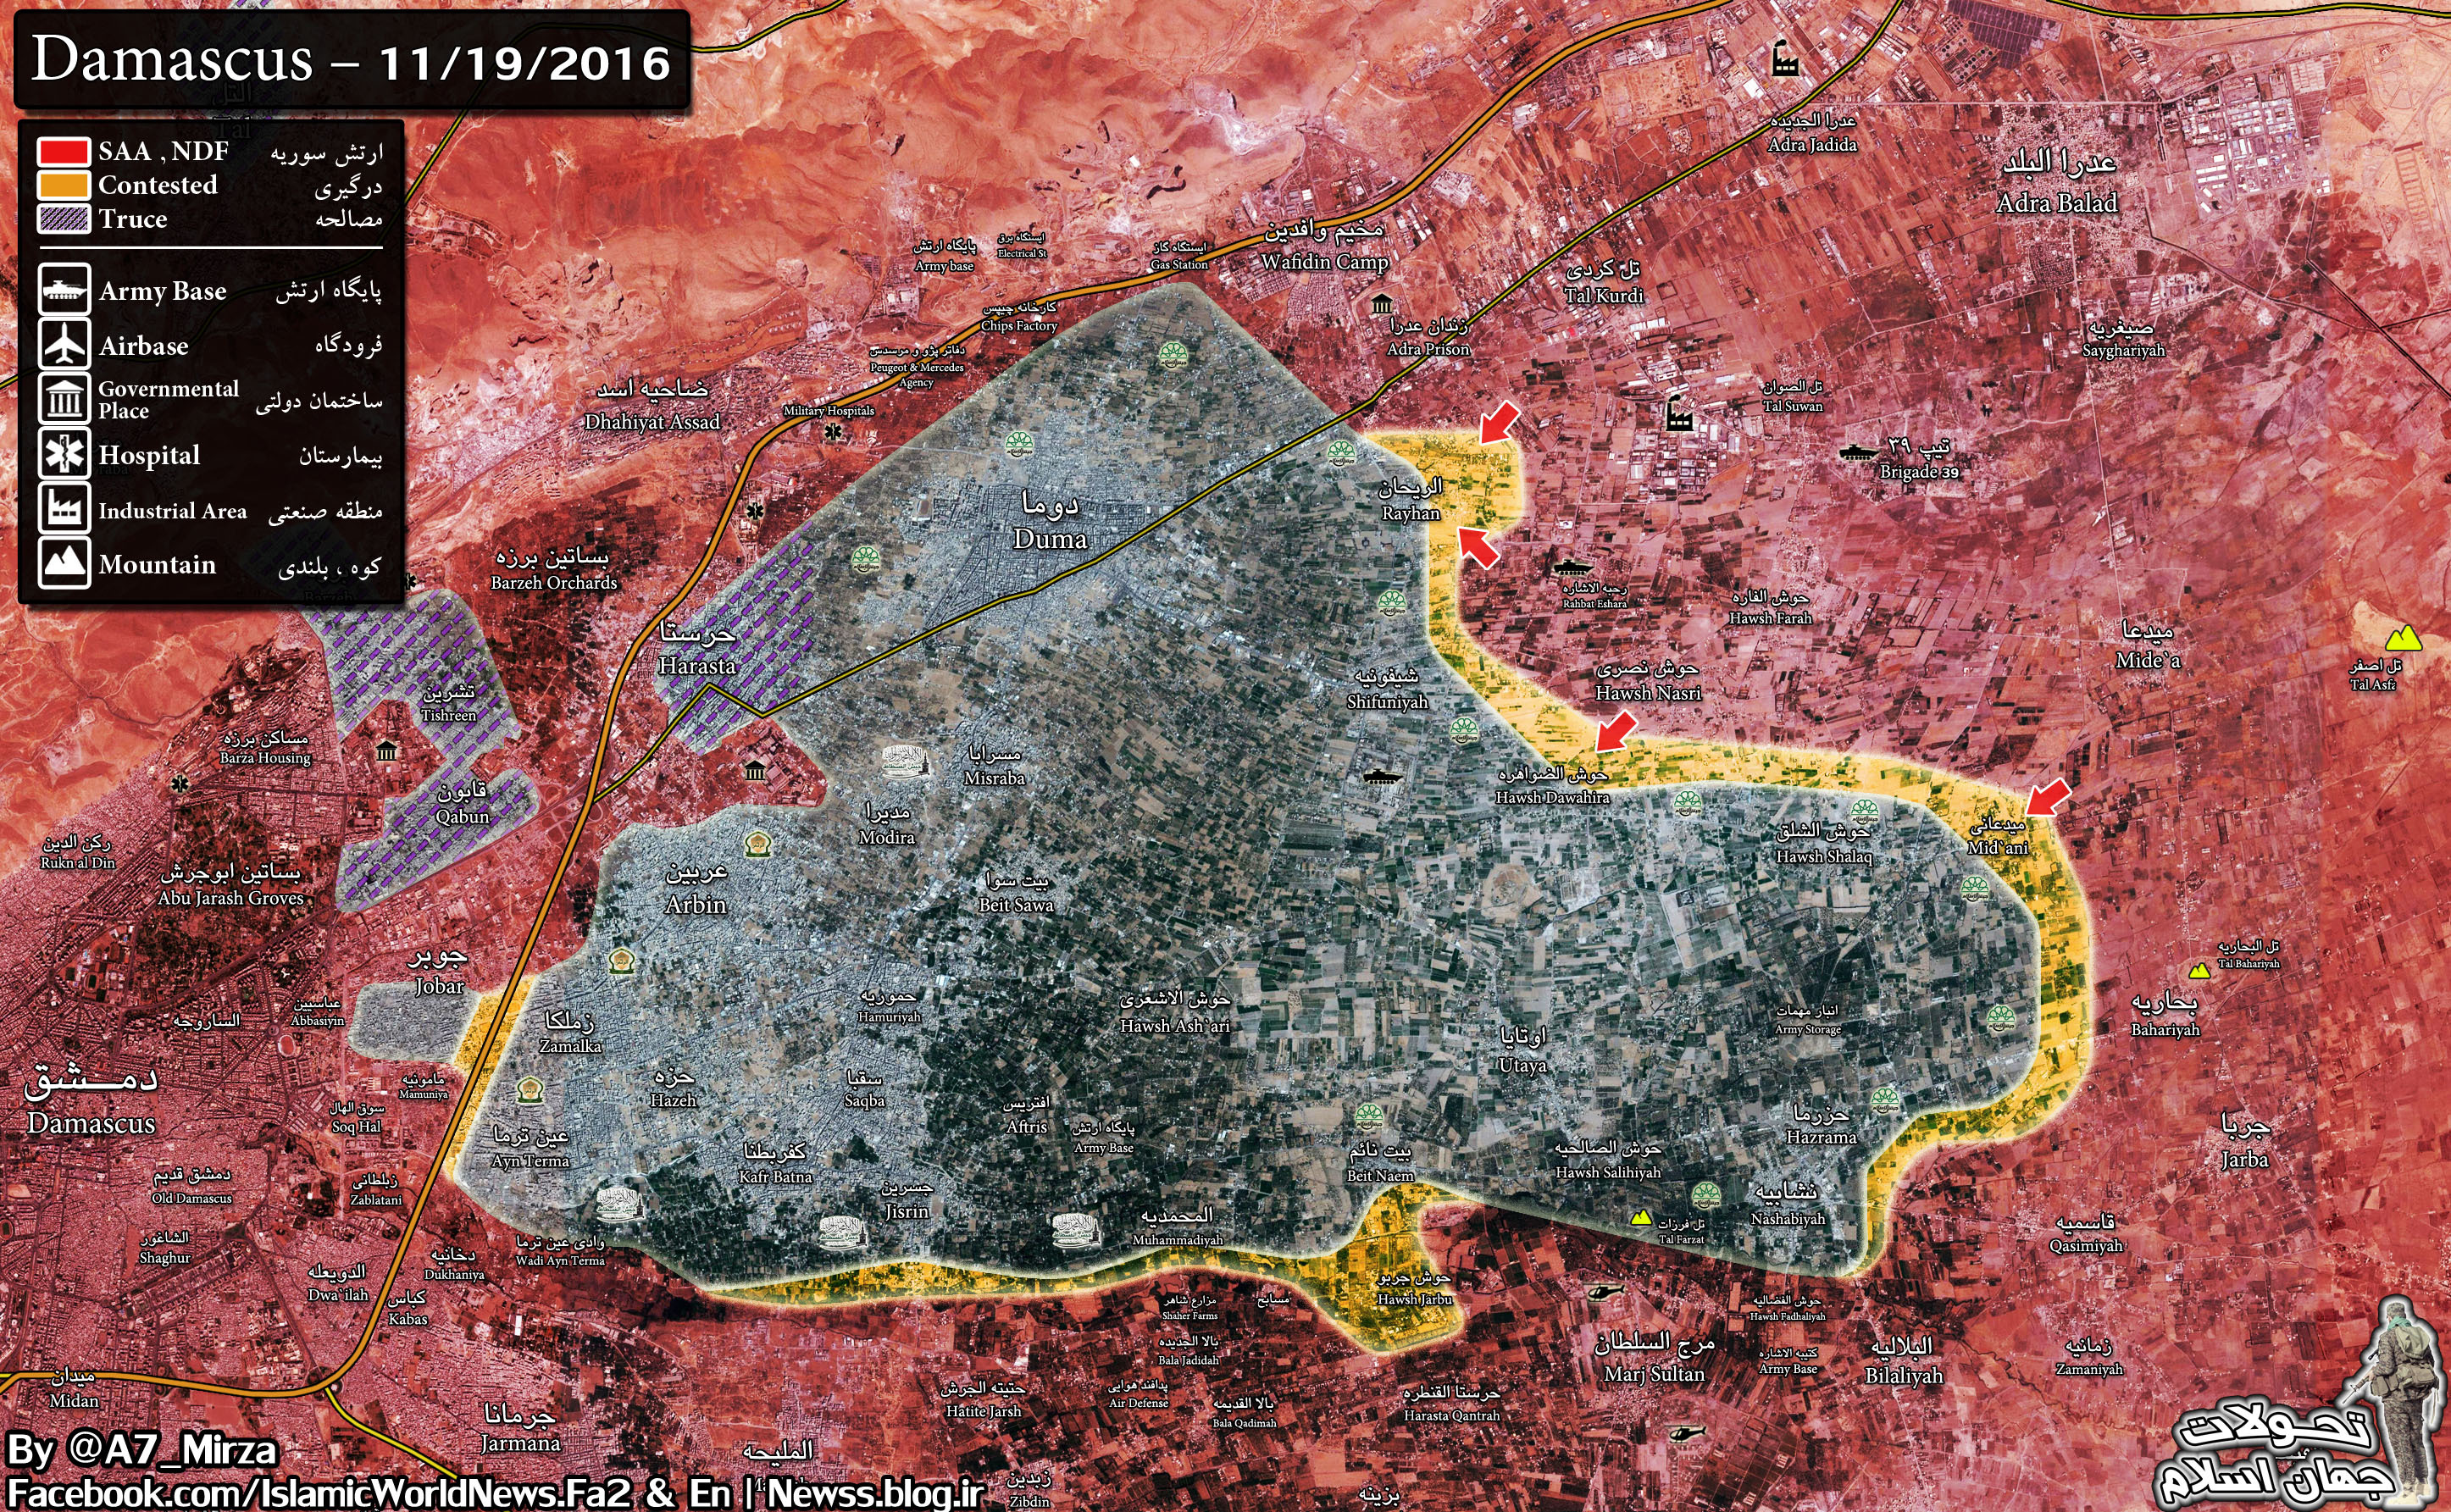 Military Situation in Eastern Ghouta Region near Damascus on November 19, 2016